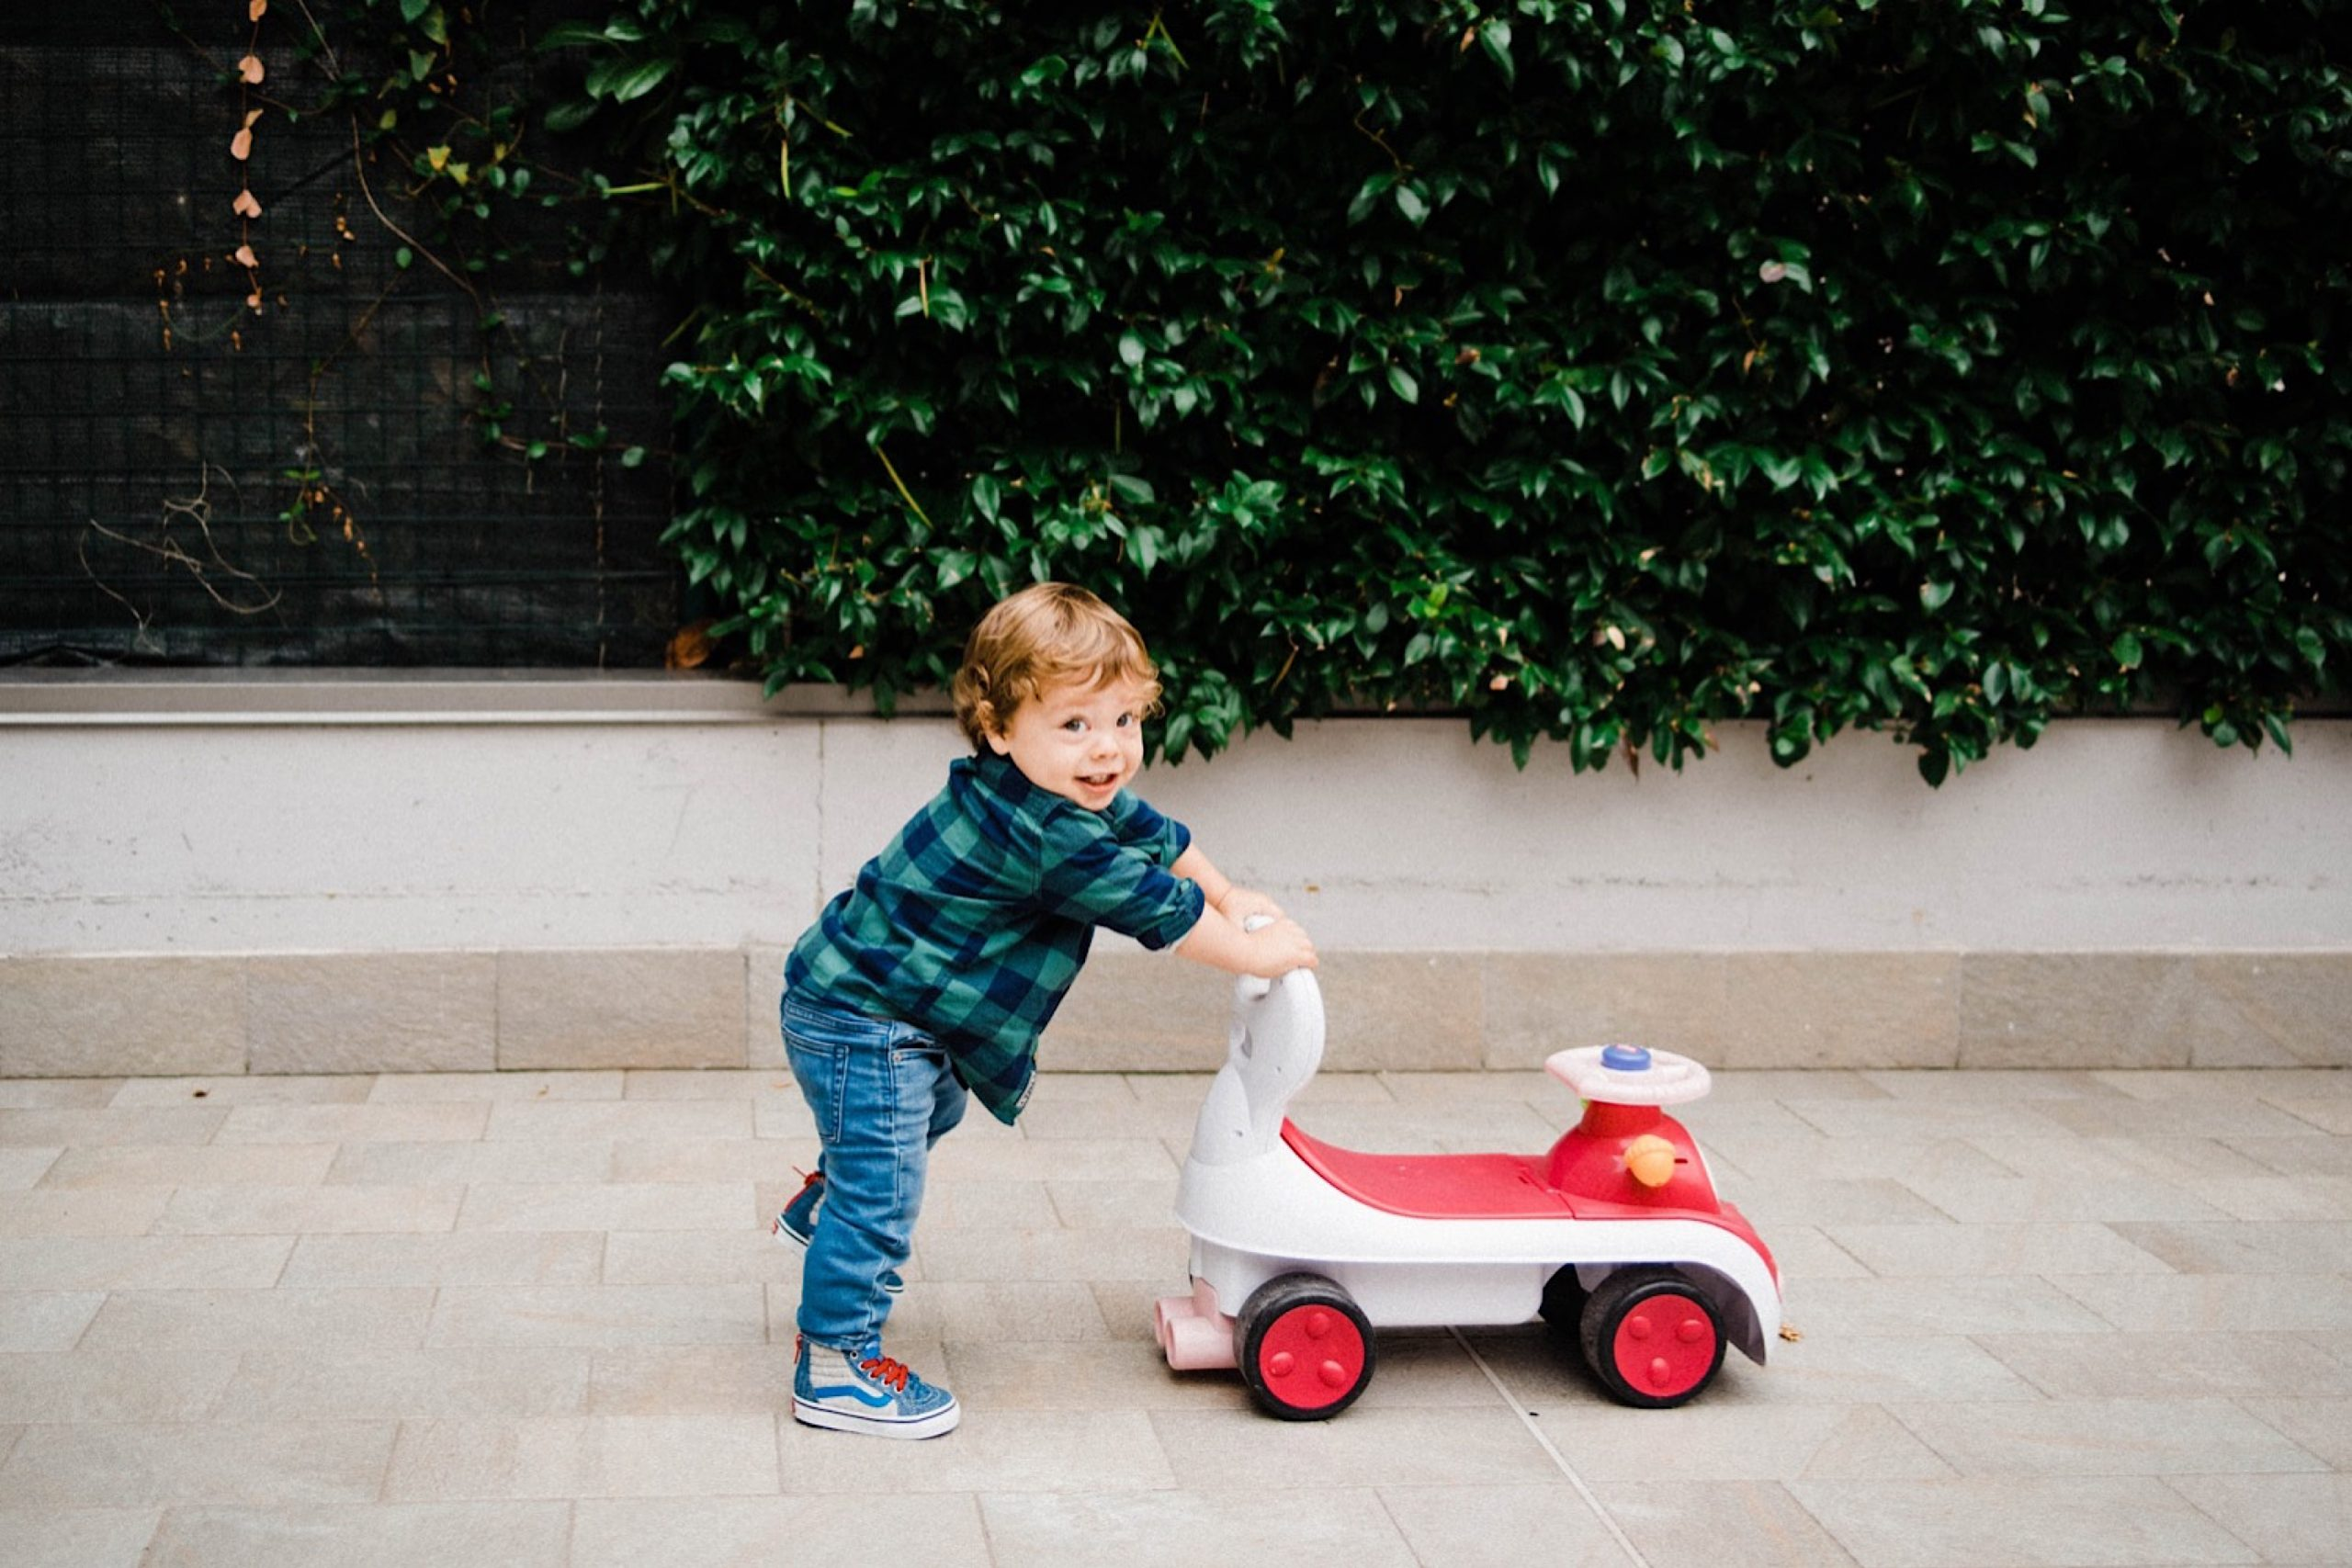 Fun Milan Family Portraits of a toddler walking a car toy and smiling.